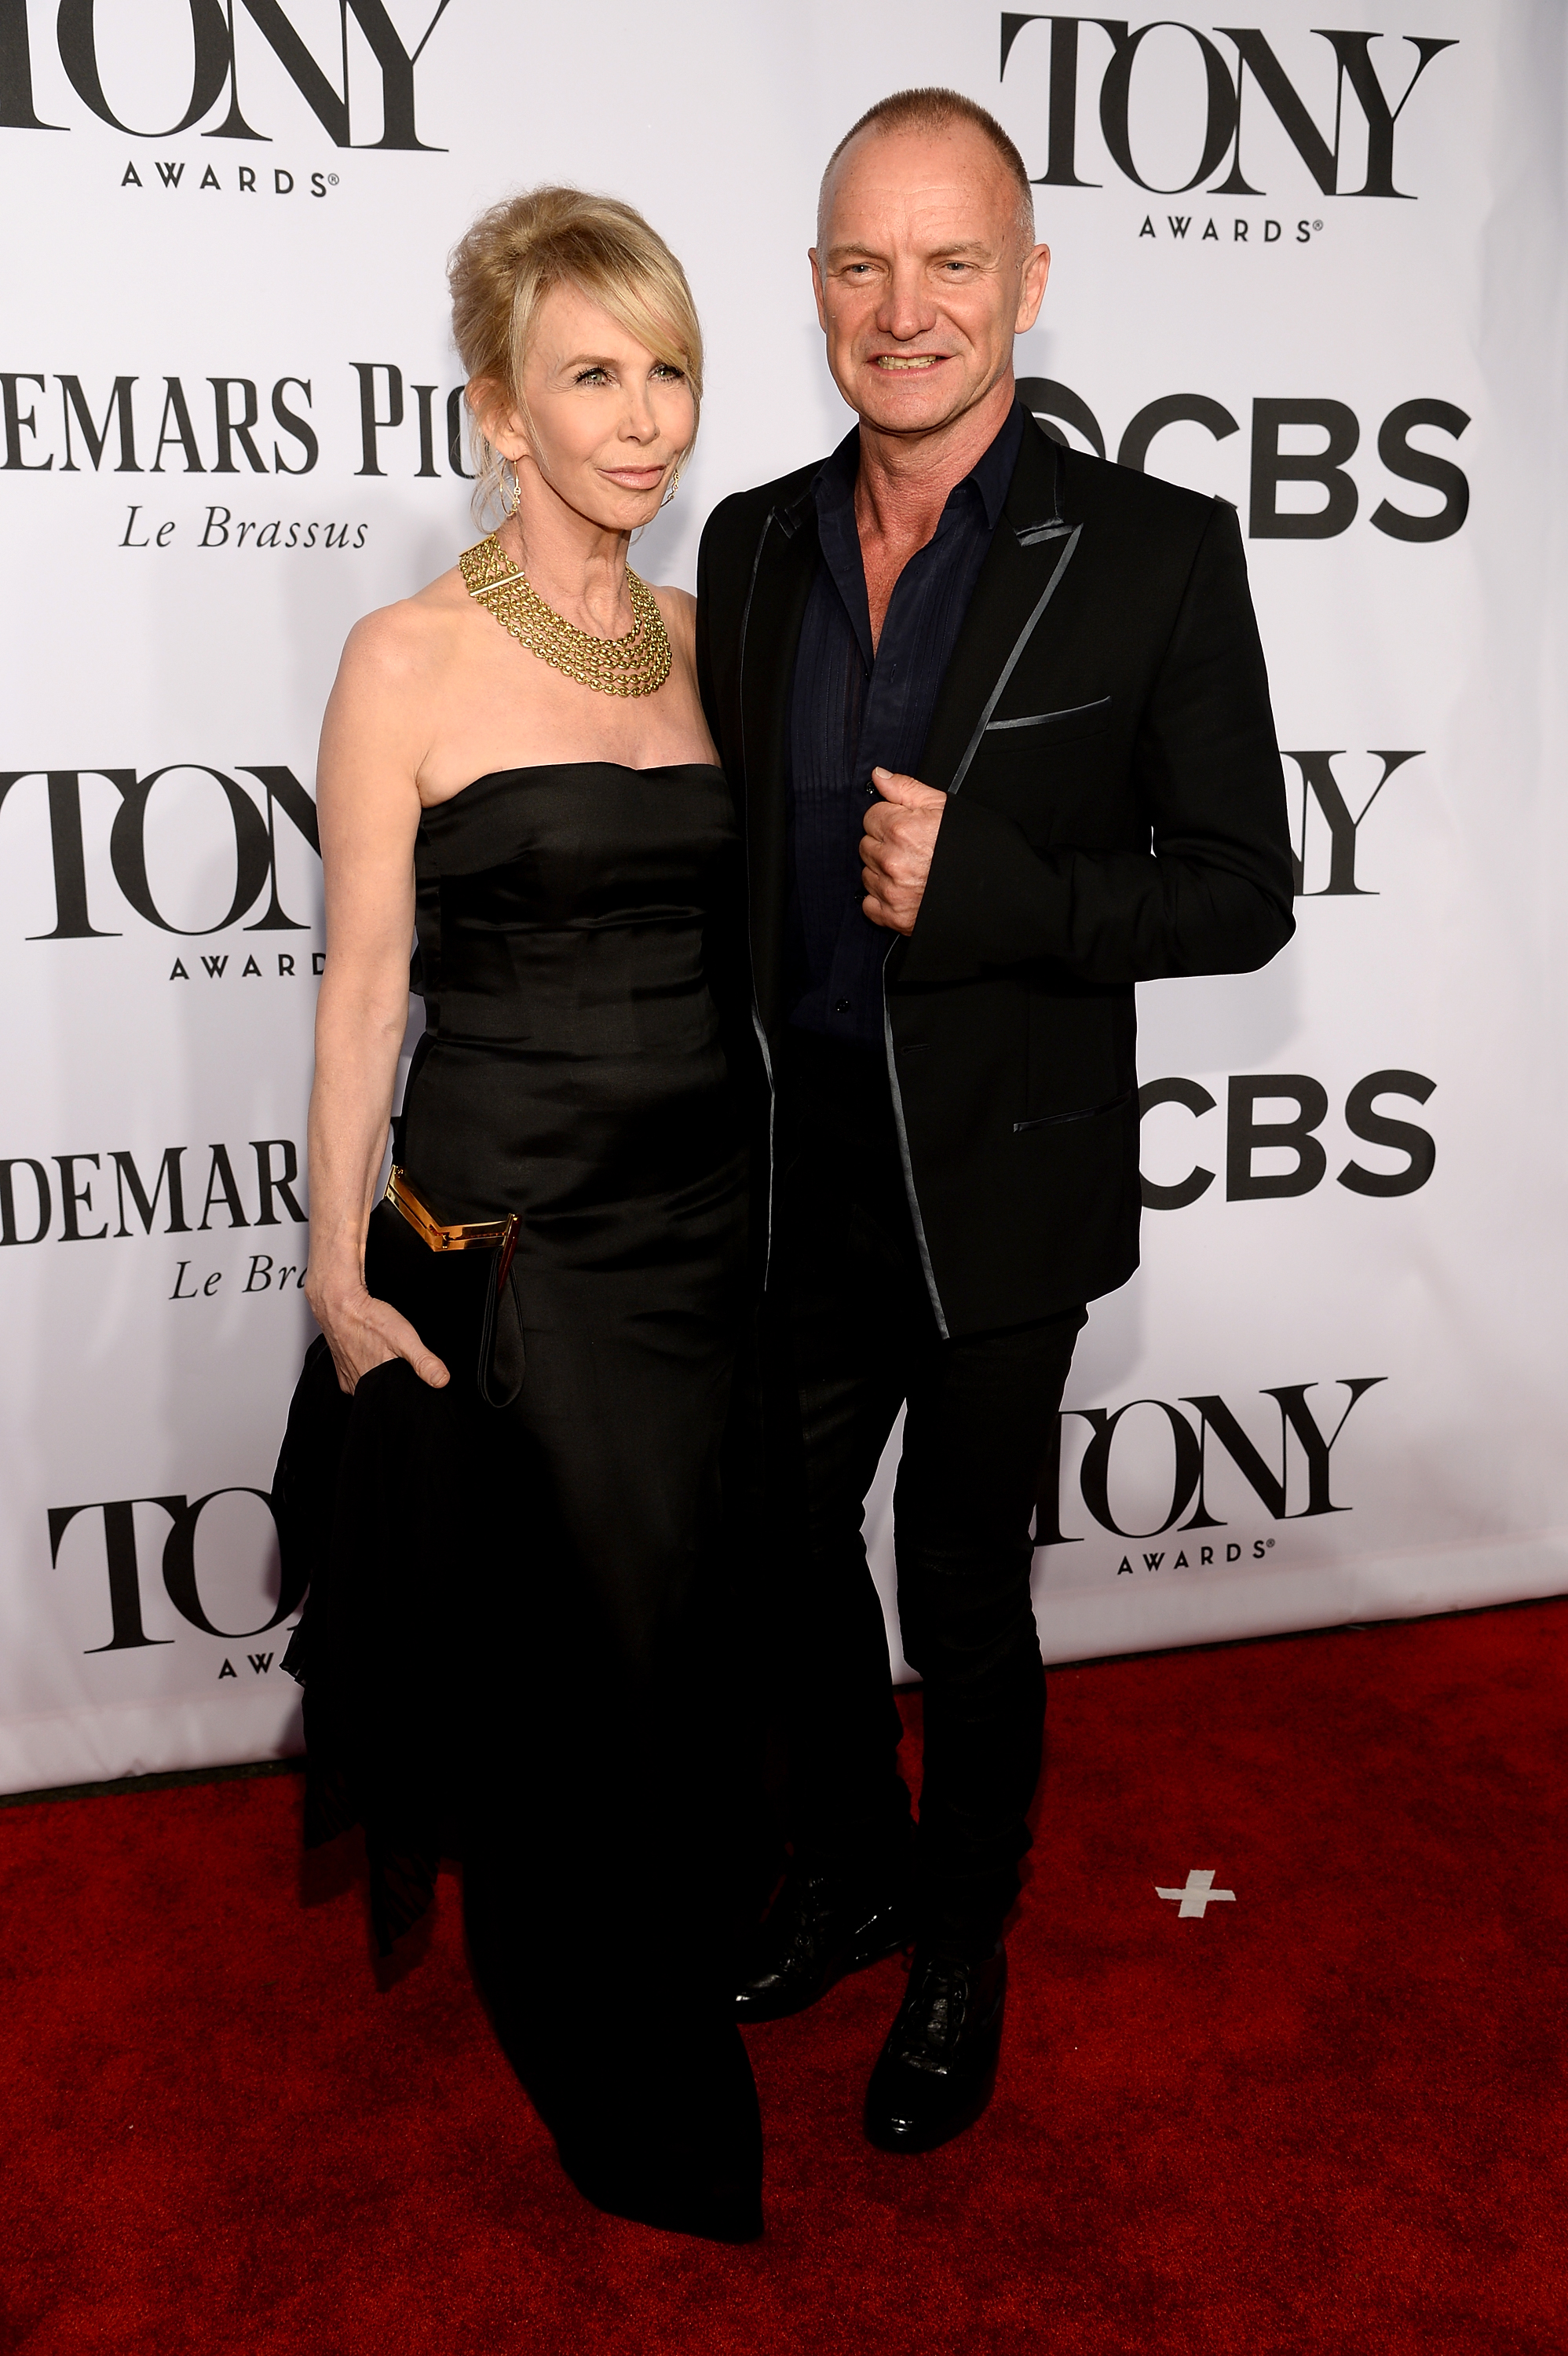 Recording artist Sting and actress Trudie Styler attend the 68th Annual Tony Awards at Radio City Music Hall on June 8, 2014 in New York City.